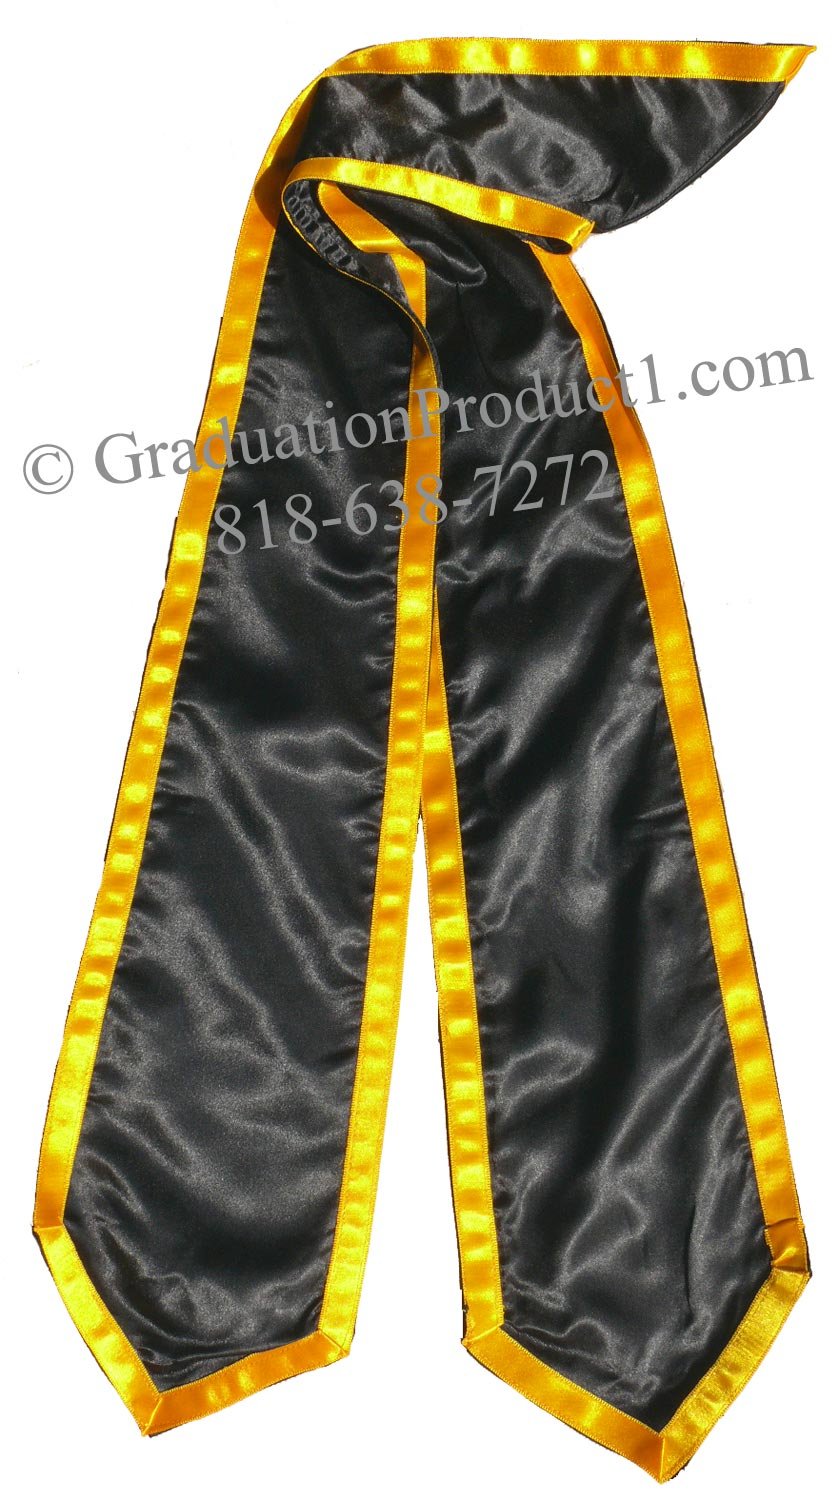 Black Color Graduation Collection from Graduation Product1